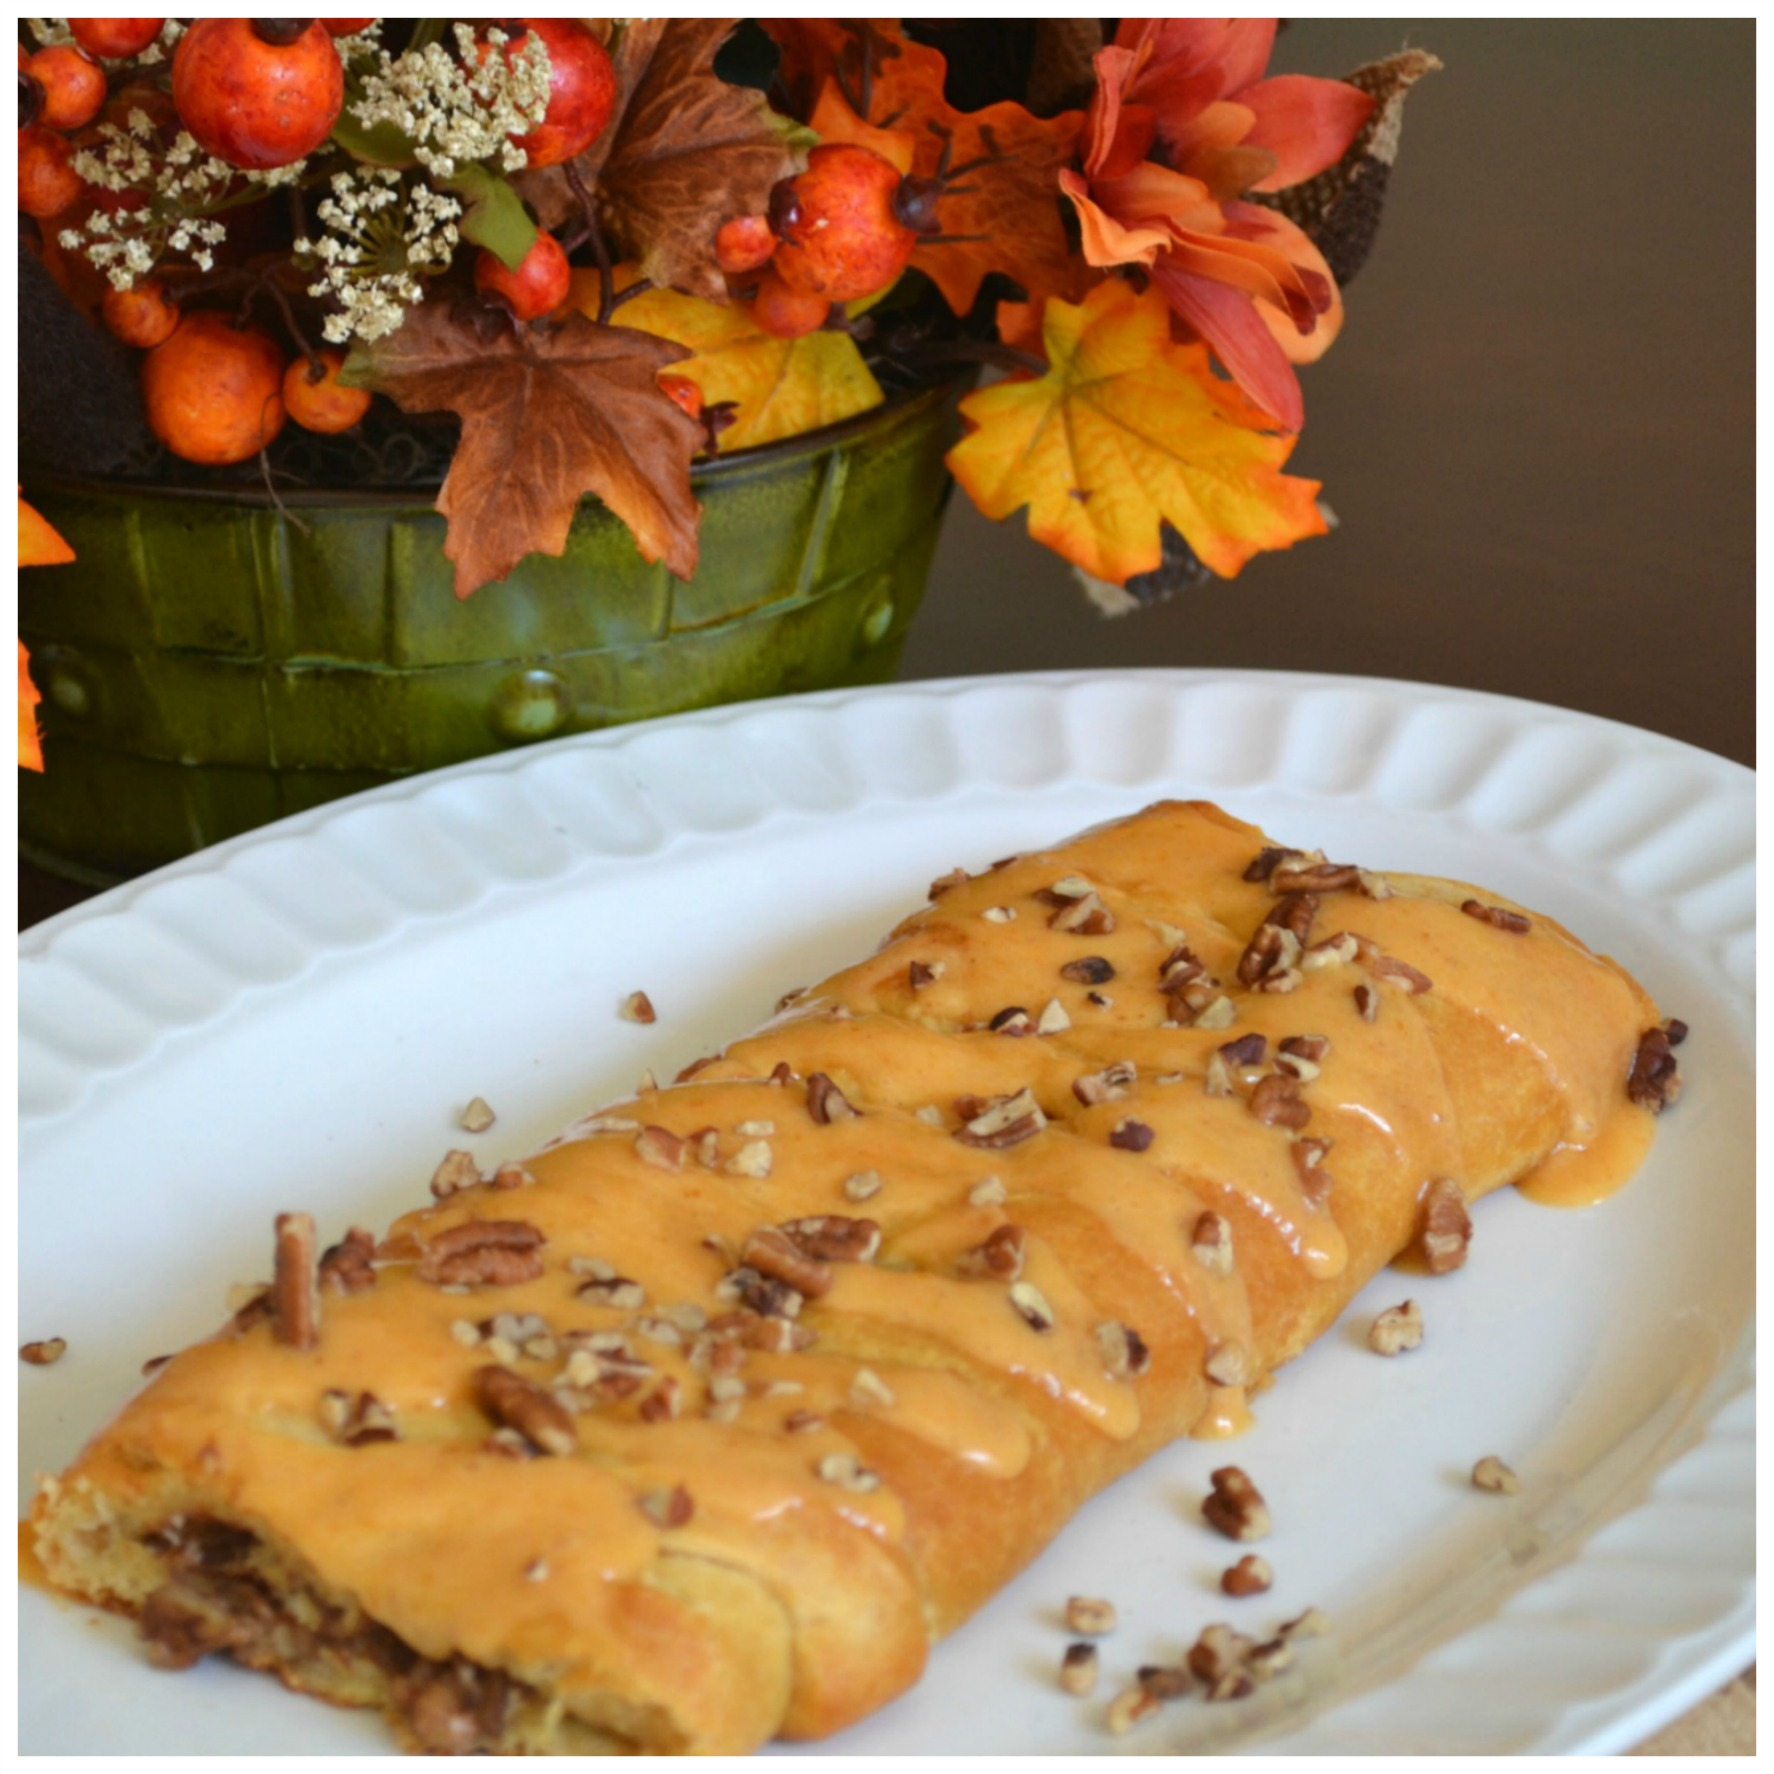 A beautiful breakfast braid filled with pumpkin, nuts, and mascarpone cheese. Baked in a refigerated crescent dough.